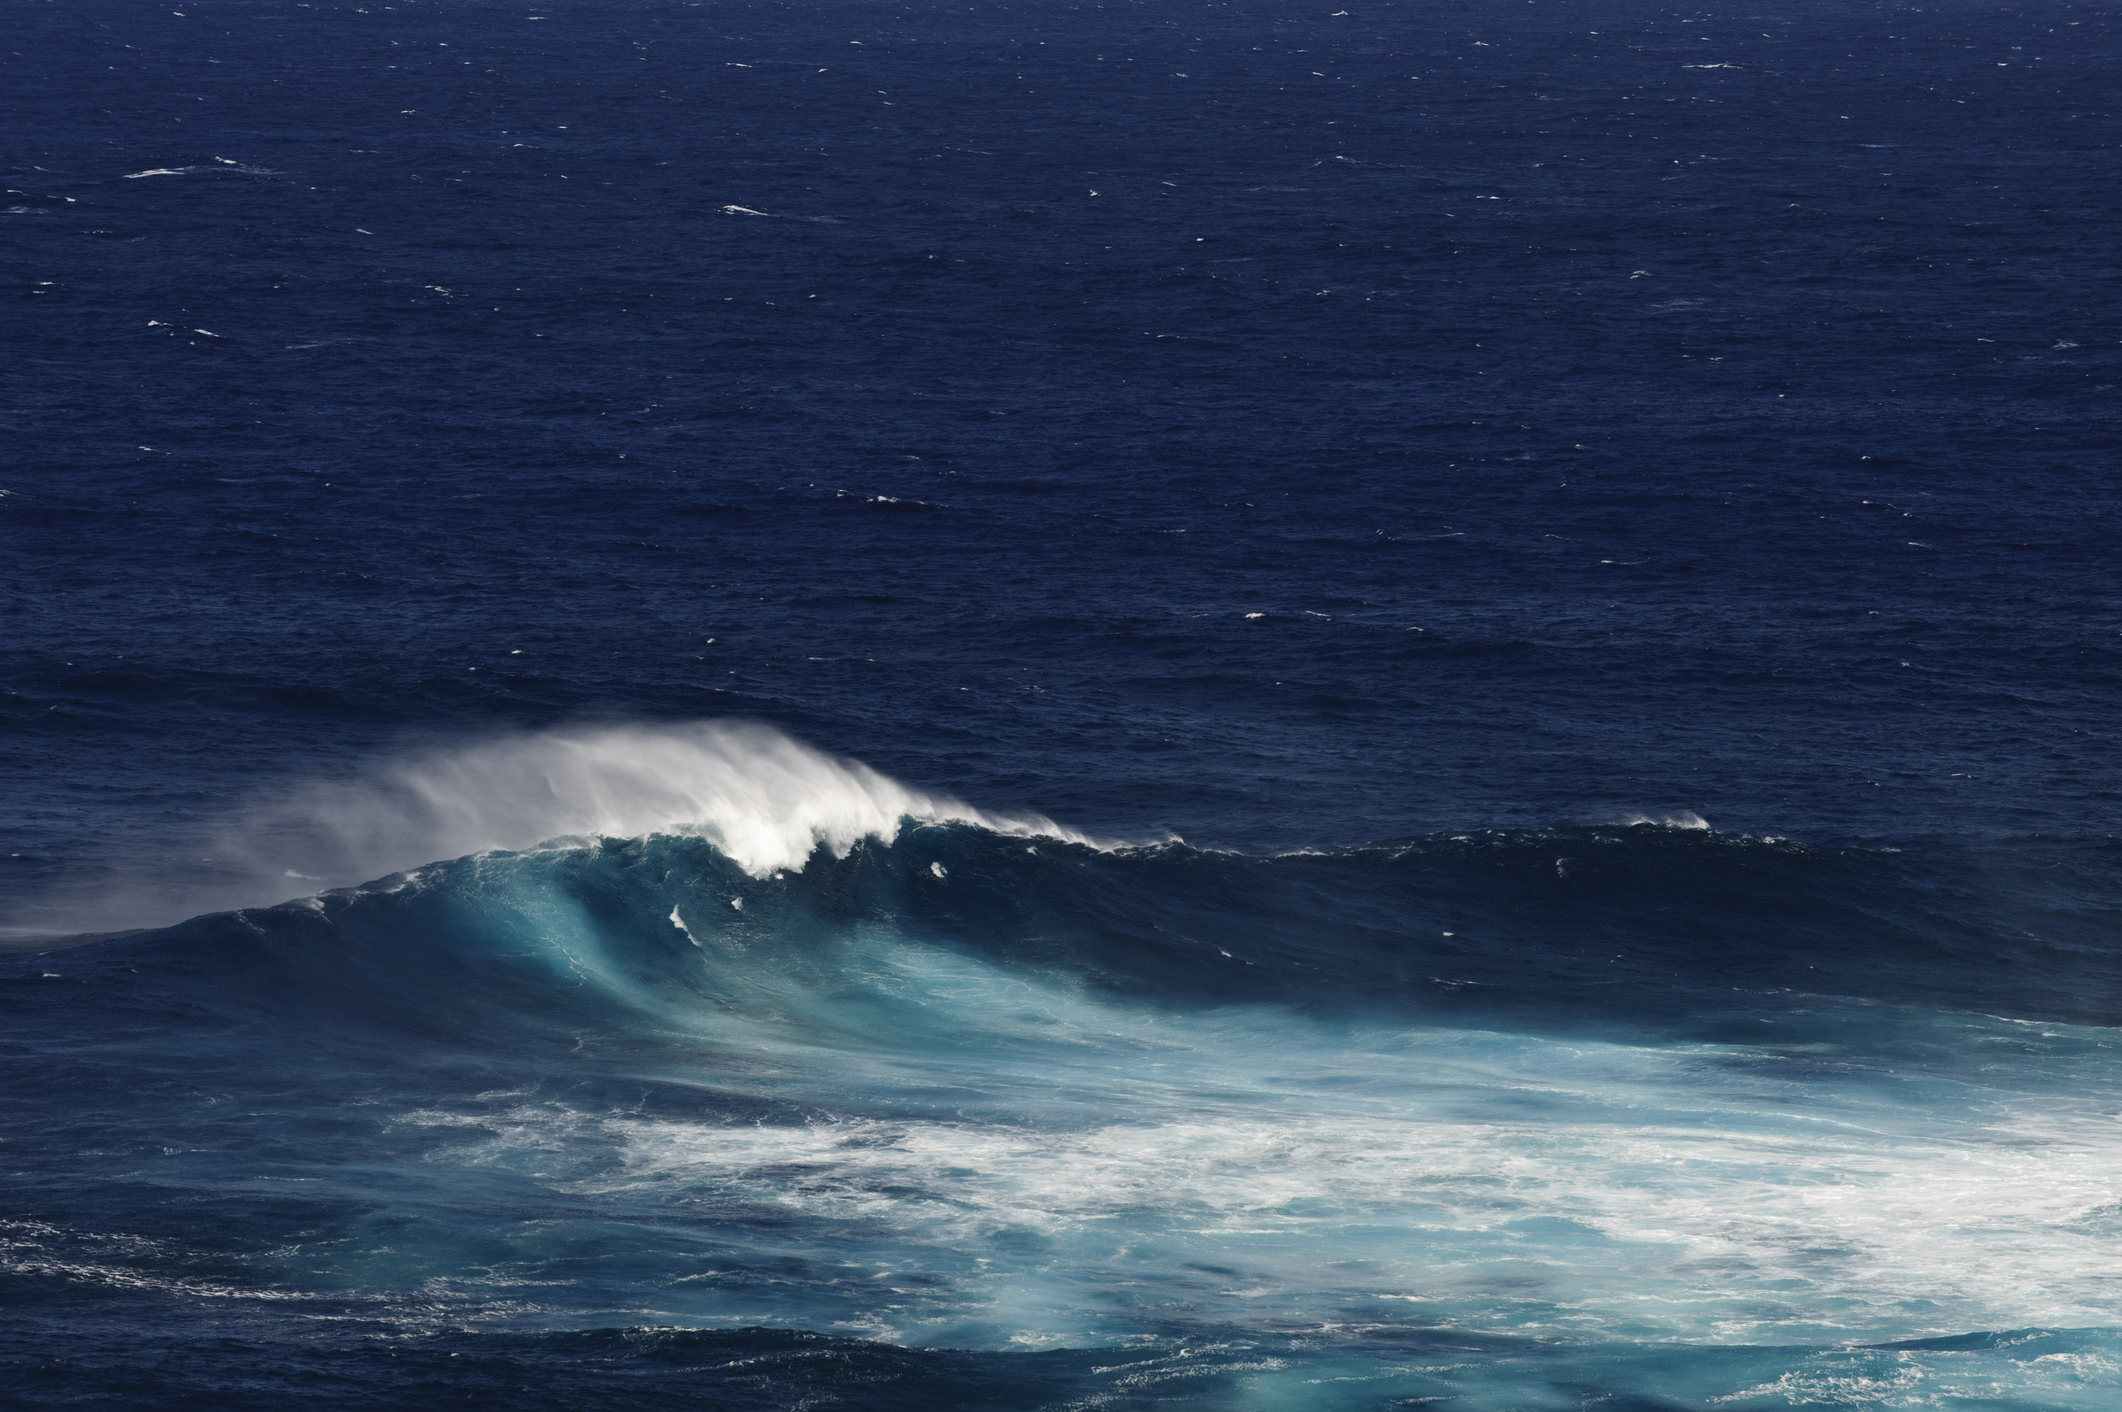 Makua Rothman's Estimated 100-Foot Wave At Jaws Could Be The Biggest Ever Surfed In Hawaii